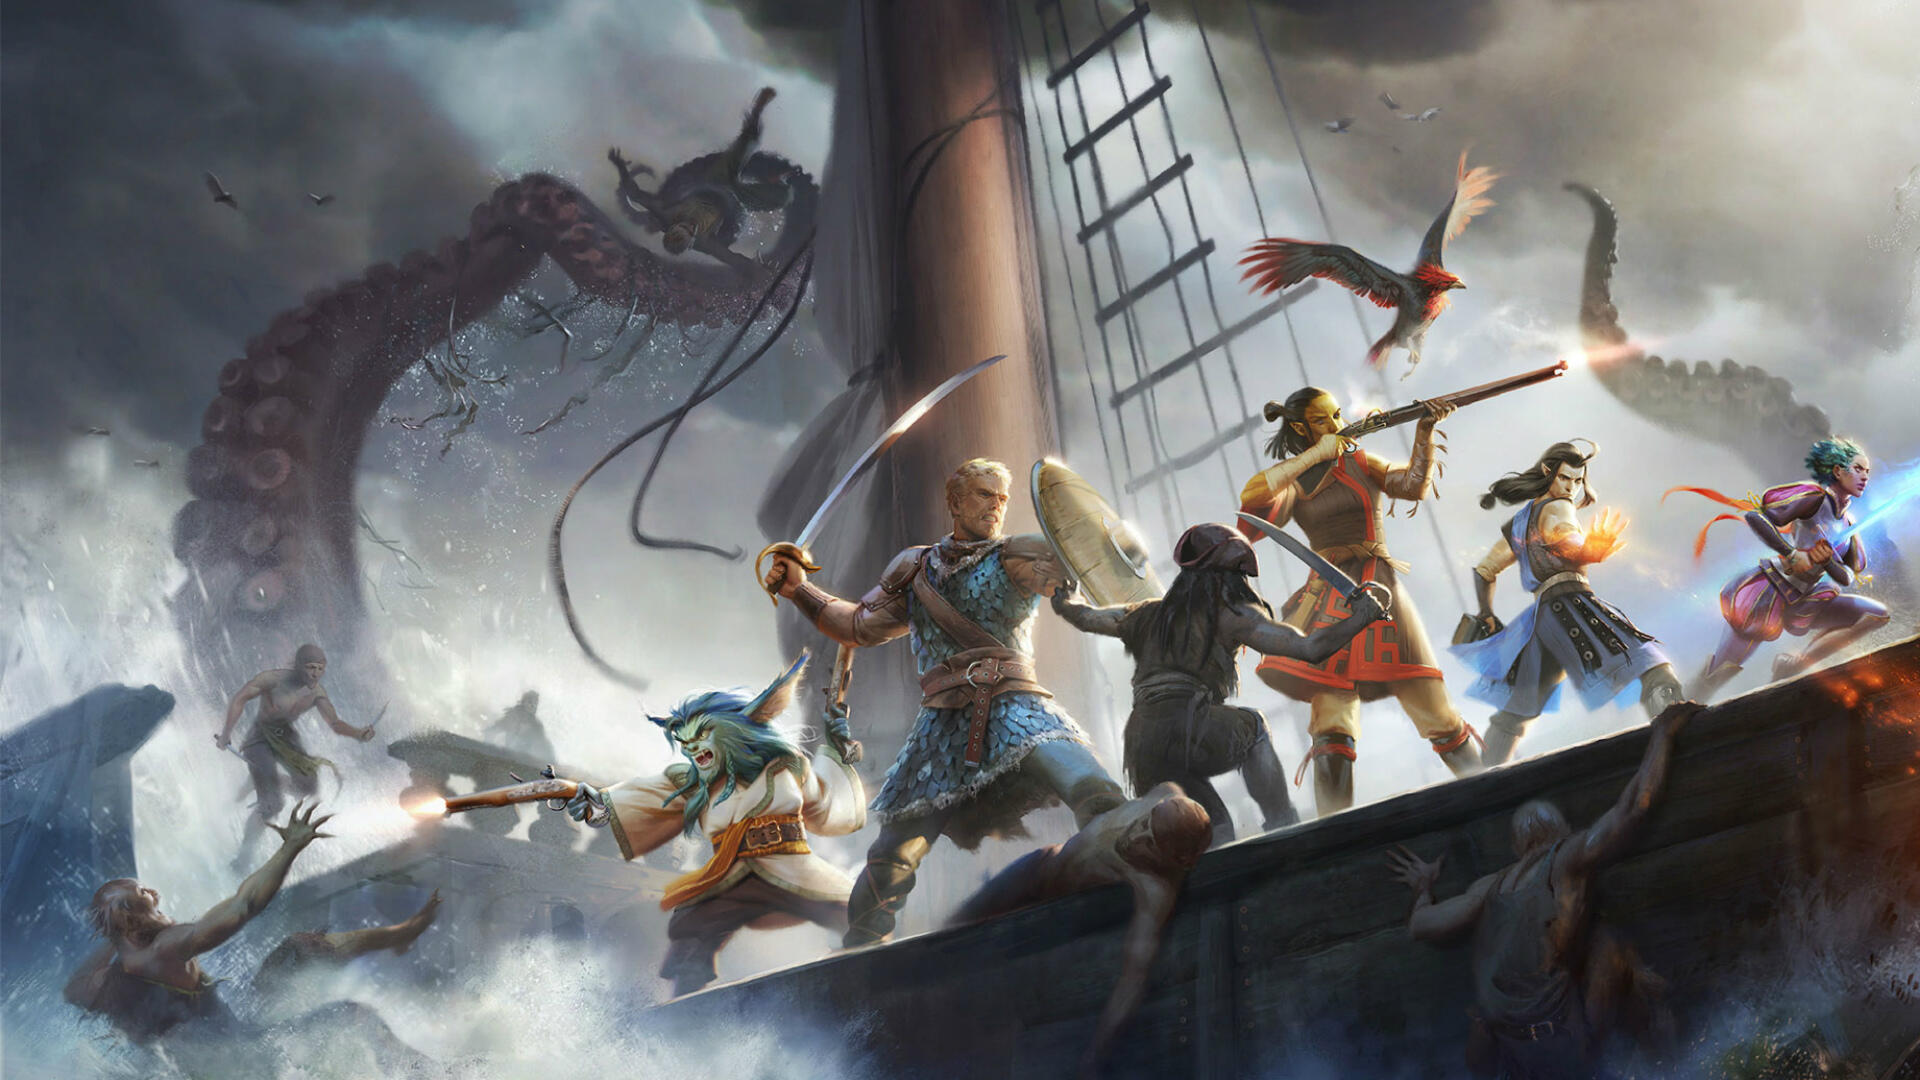 Pillars of Eternity 2 Adds Turn-Based Combat Option in New Update